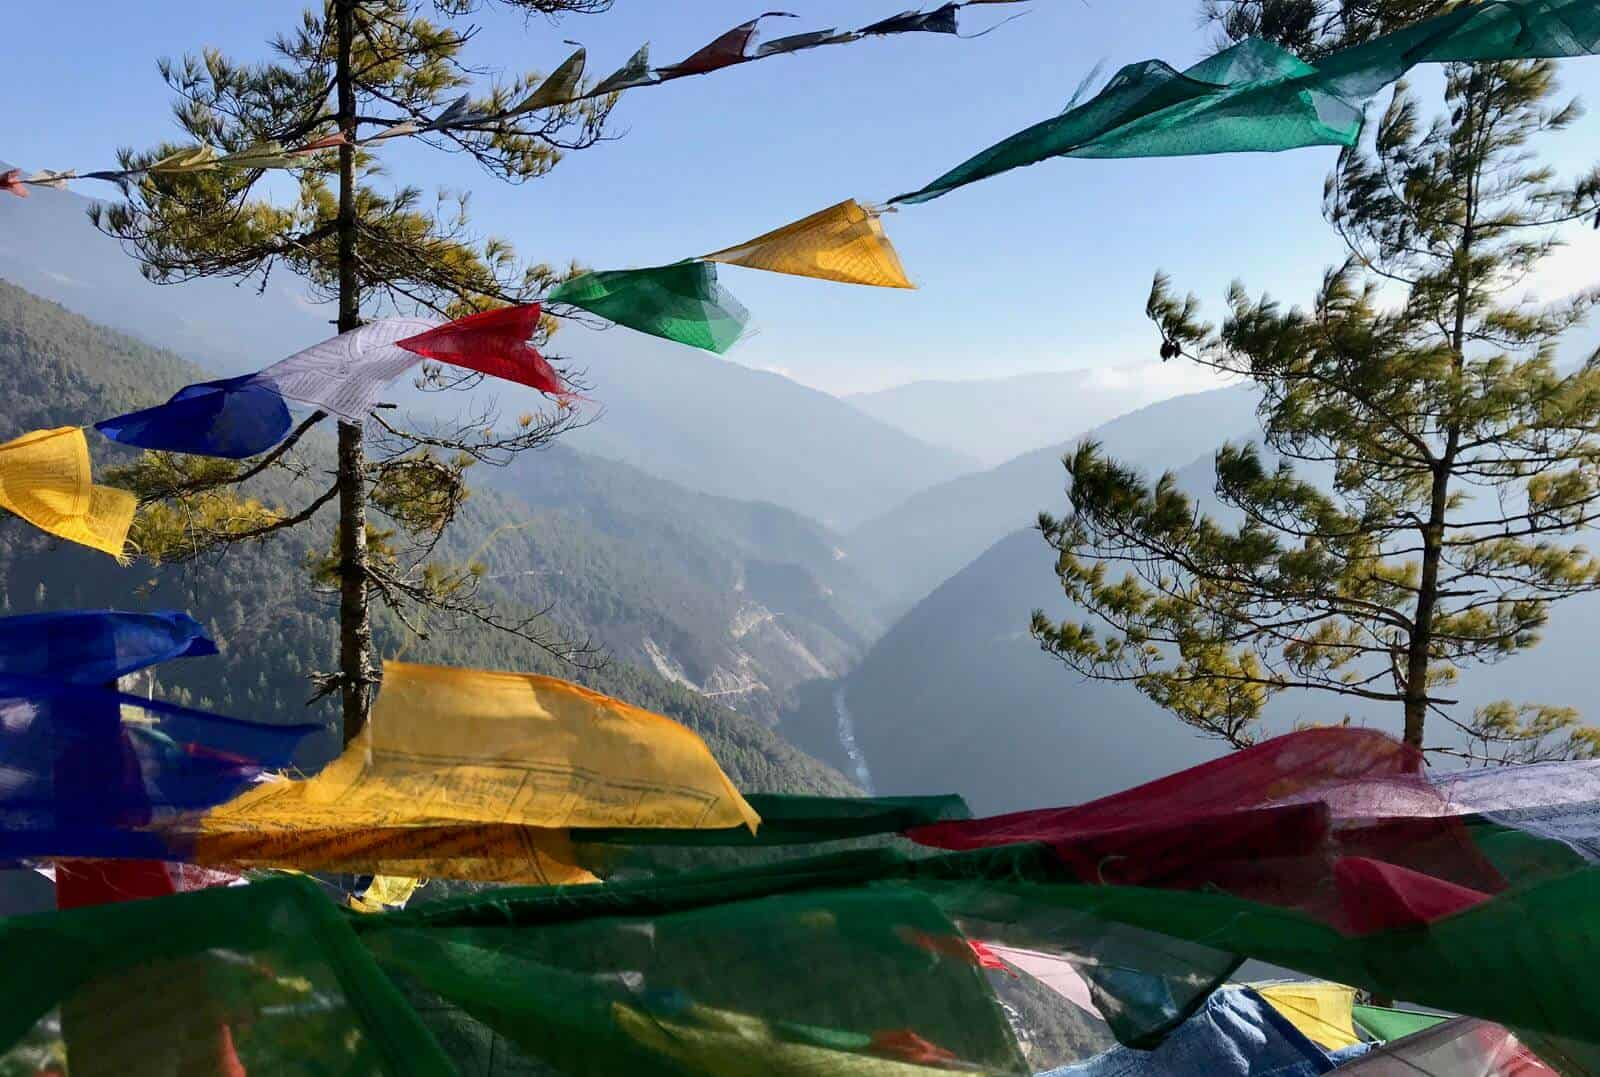 Valley prayer flags betternotstop road to happiness